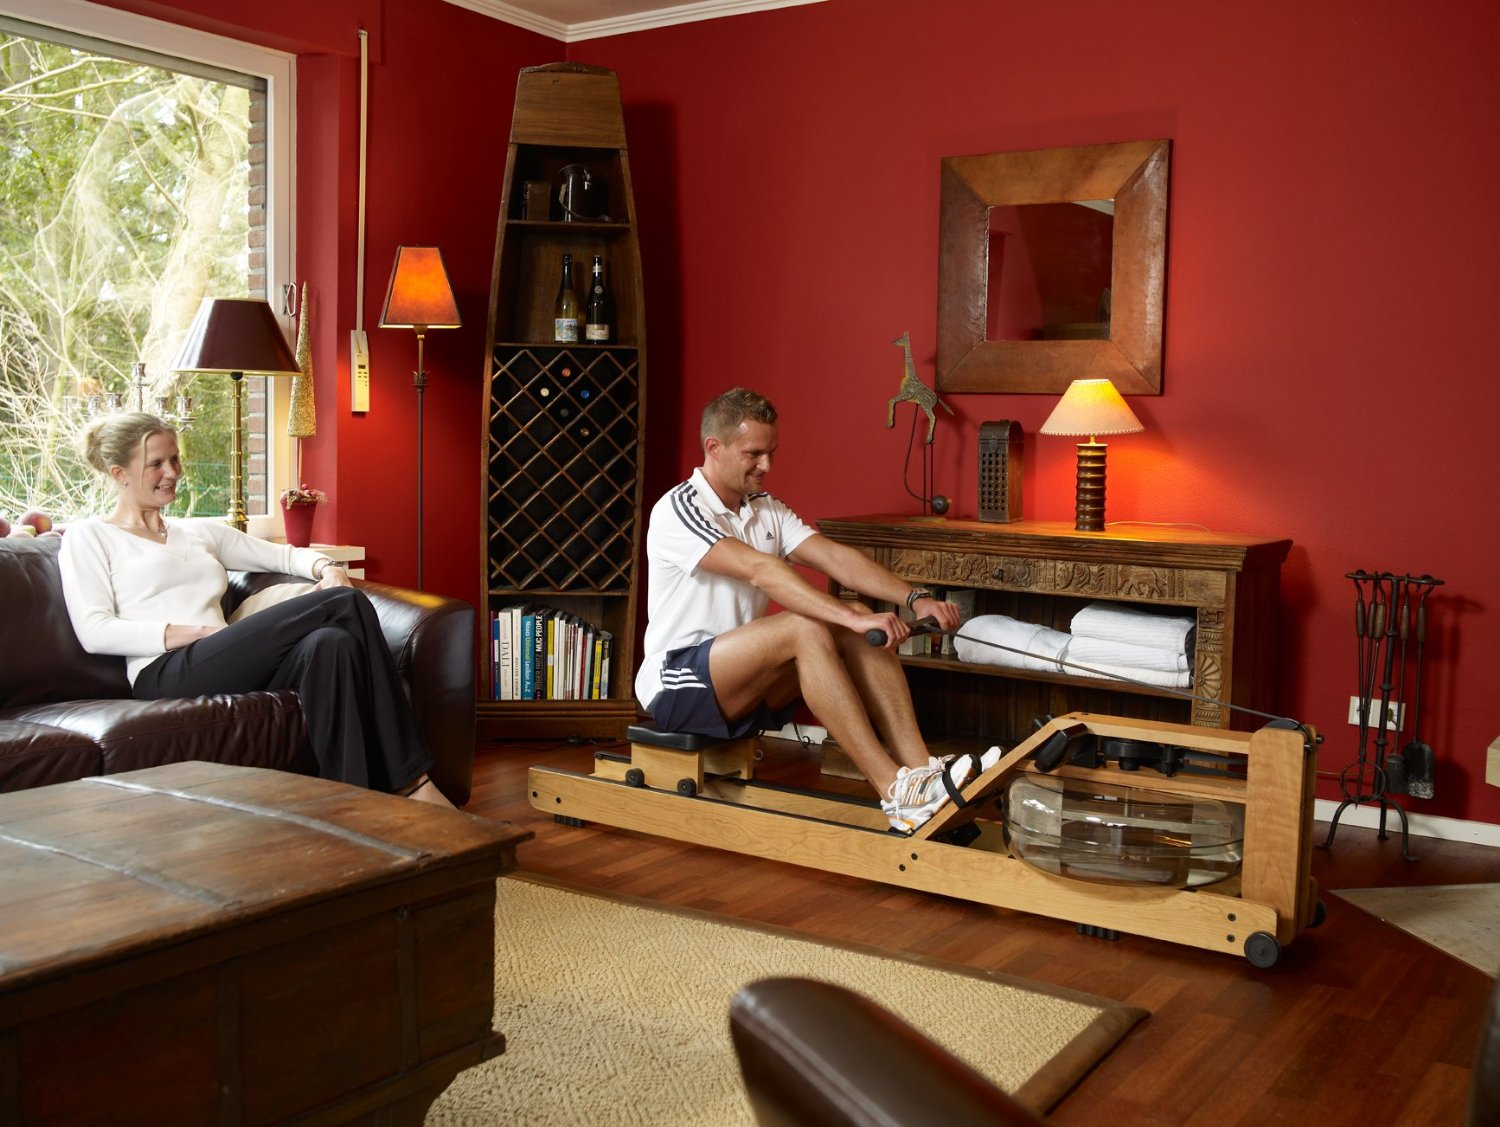 Waterrower a1 home rowing machine review fit clarity - Waterrower house of cards ...